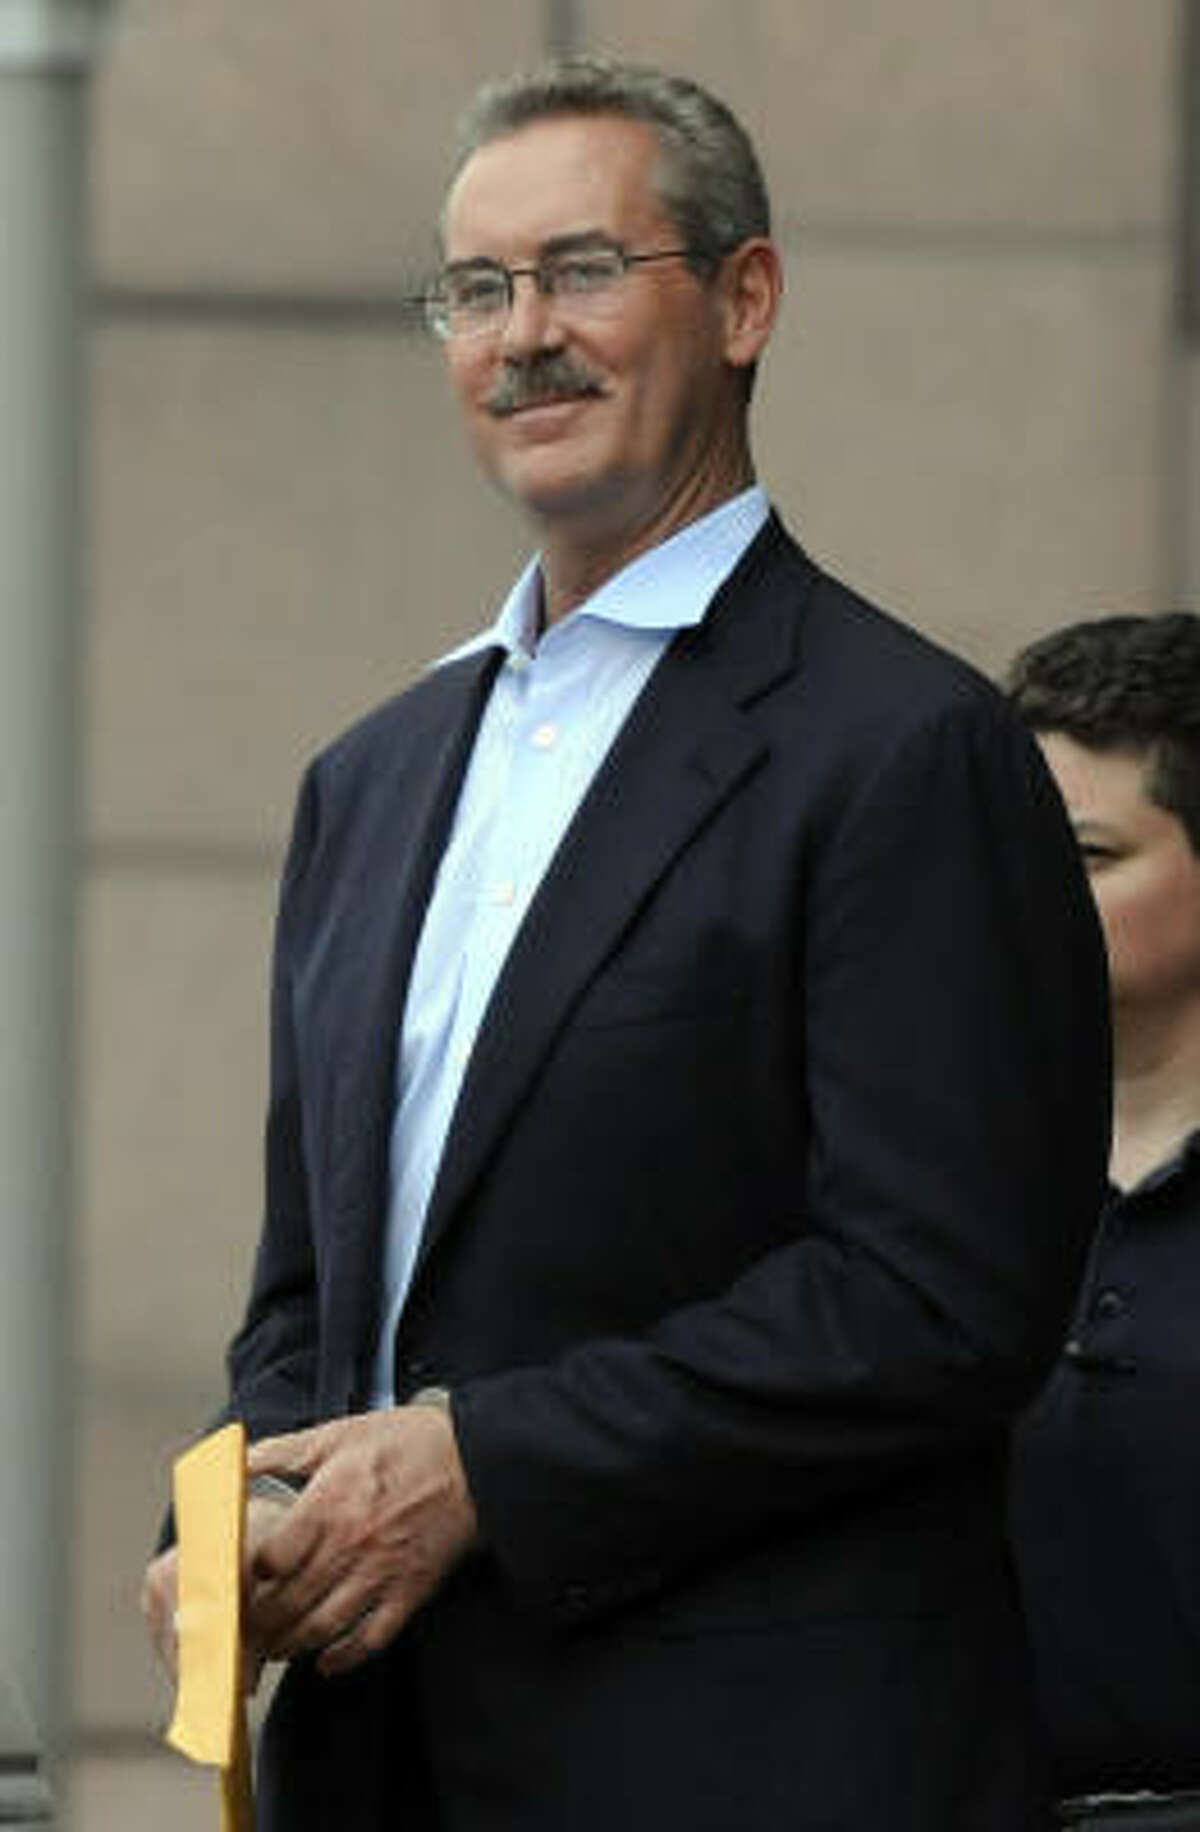 R. Allen Stanford smiles as he is escorted out of the federal courthouse in Houston in June.